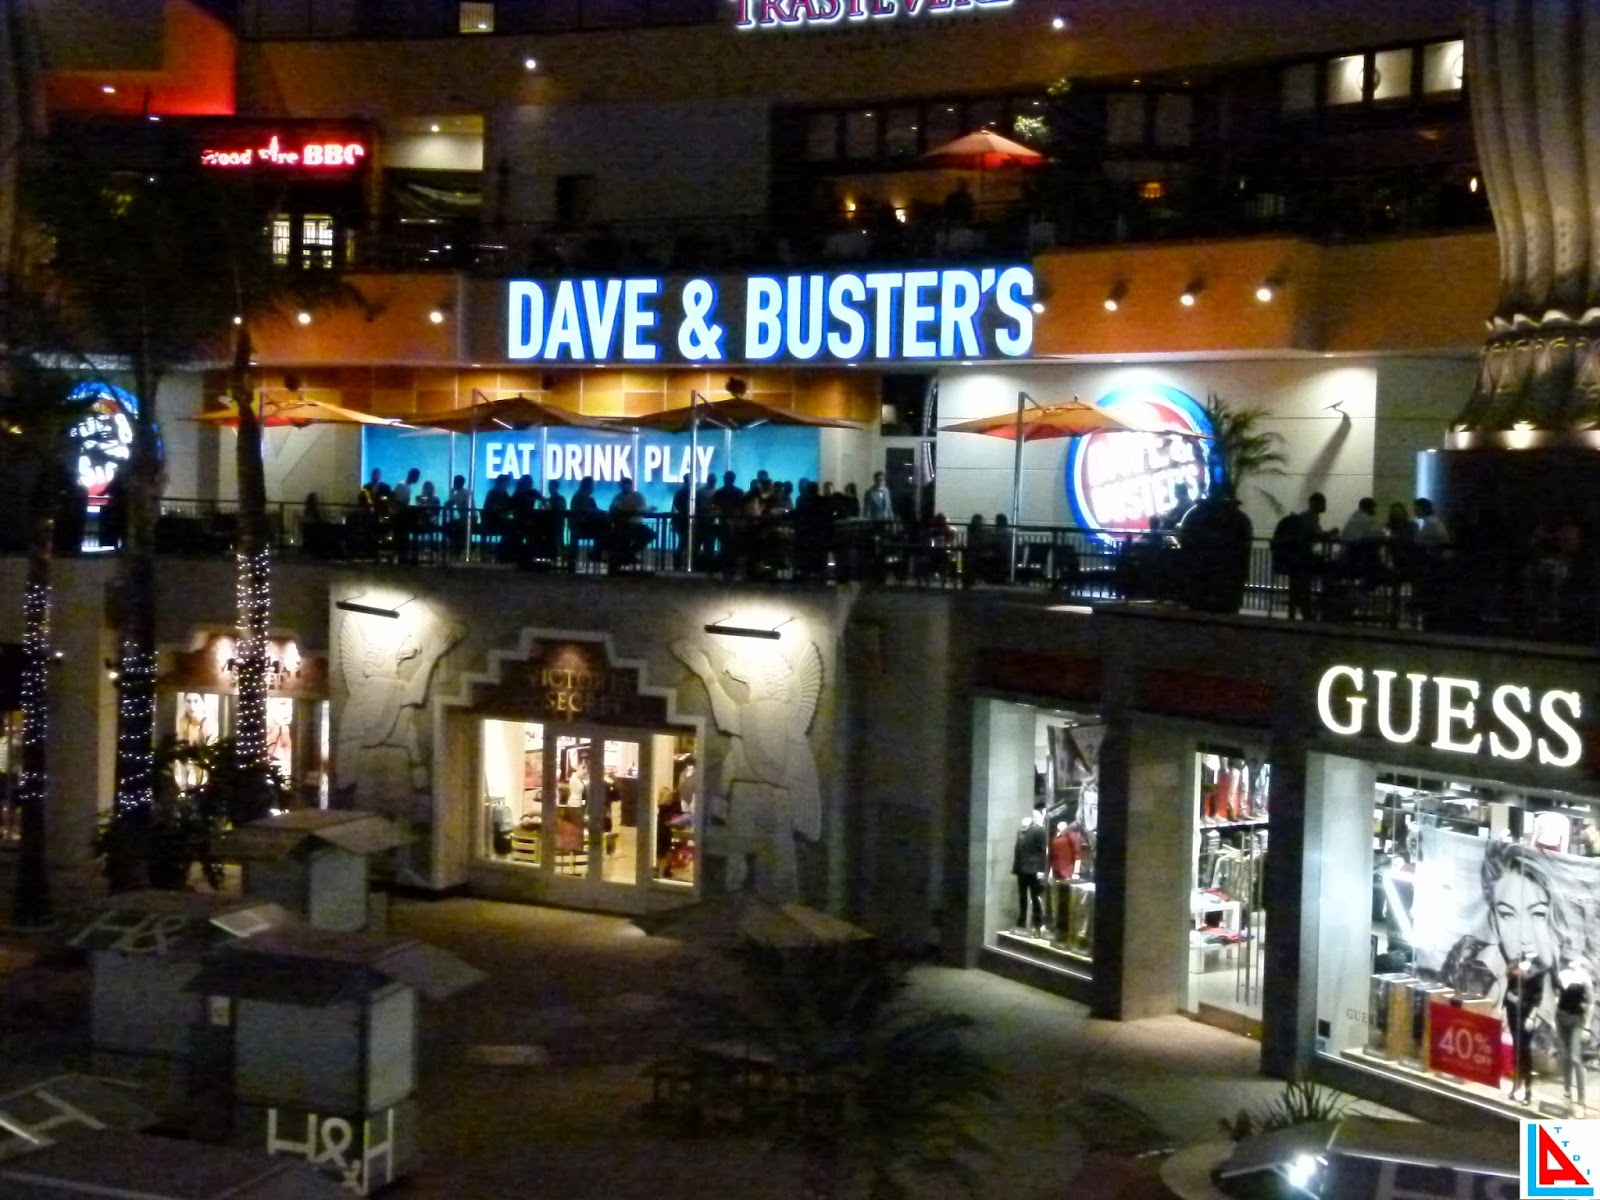 Dave and busters printable coupons january 2013 - Get Your Free Game Play Coupon By Signing Up For Our Rewards Program Https Www Daveandbusters Com Rewards